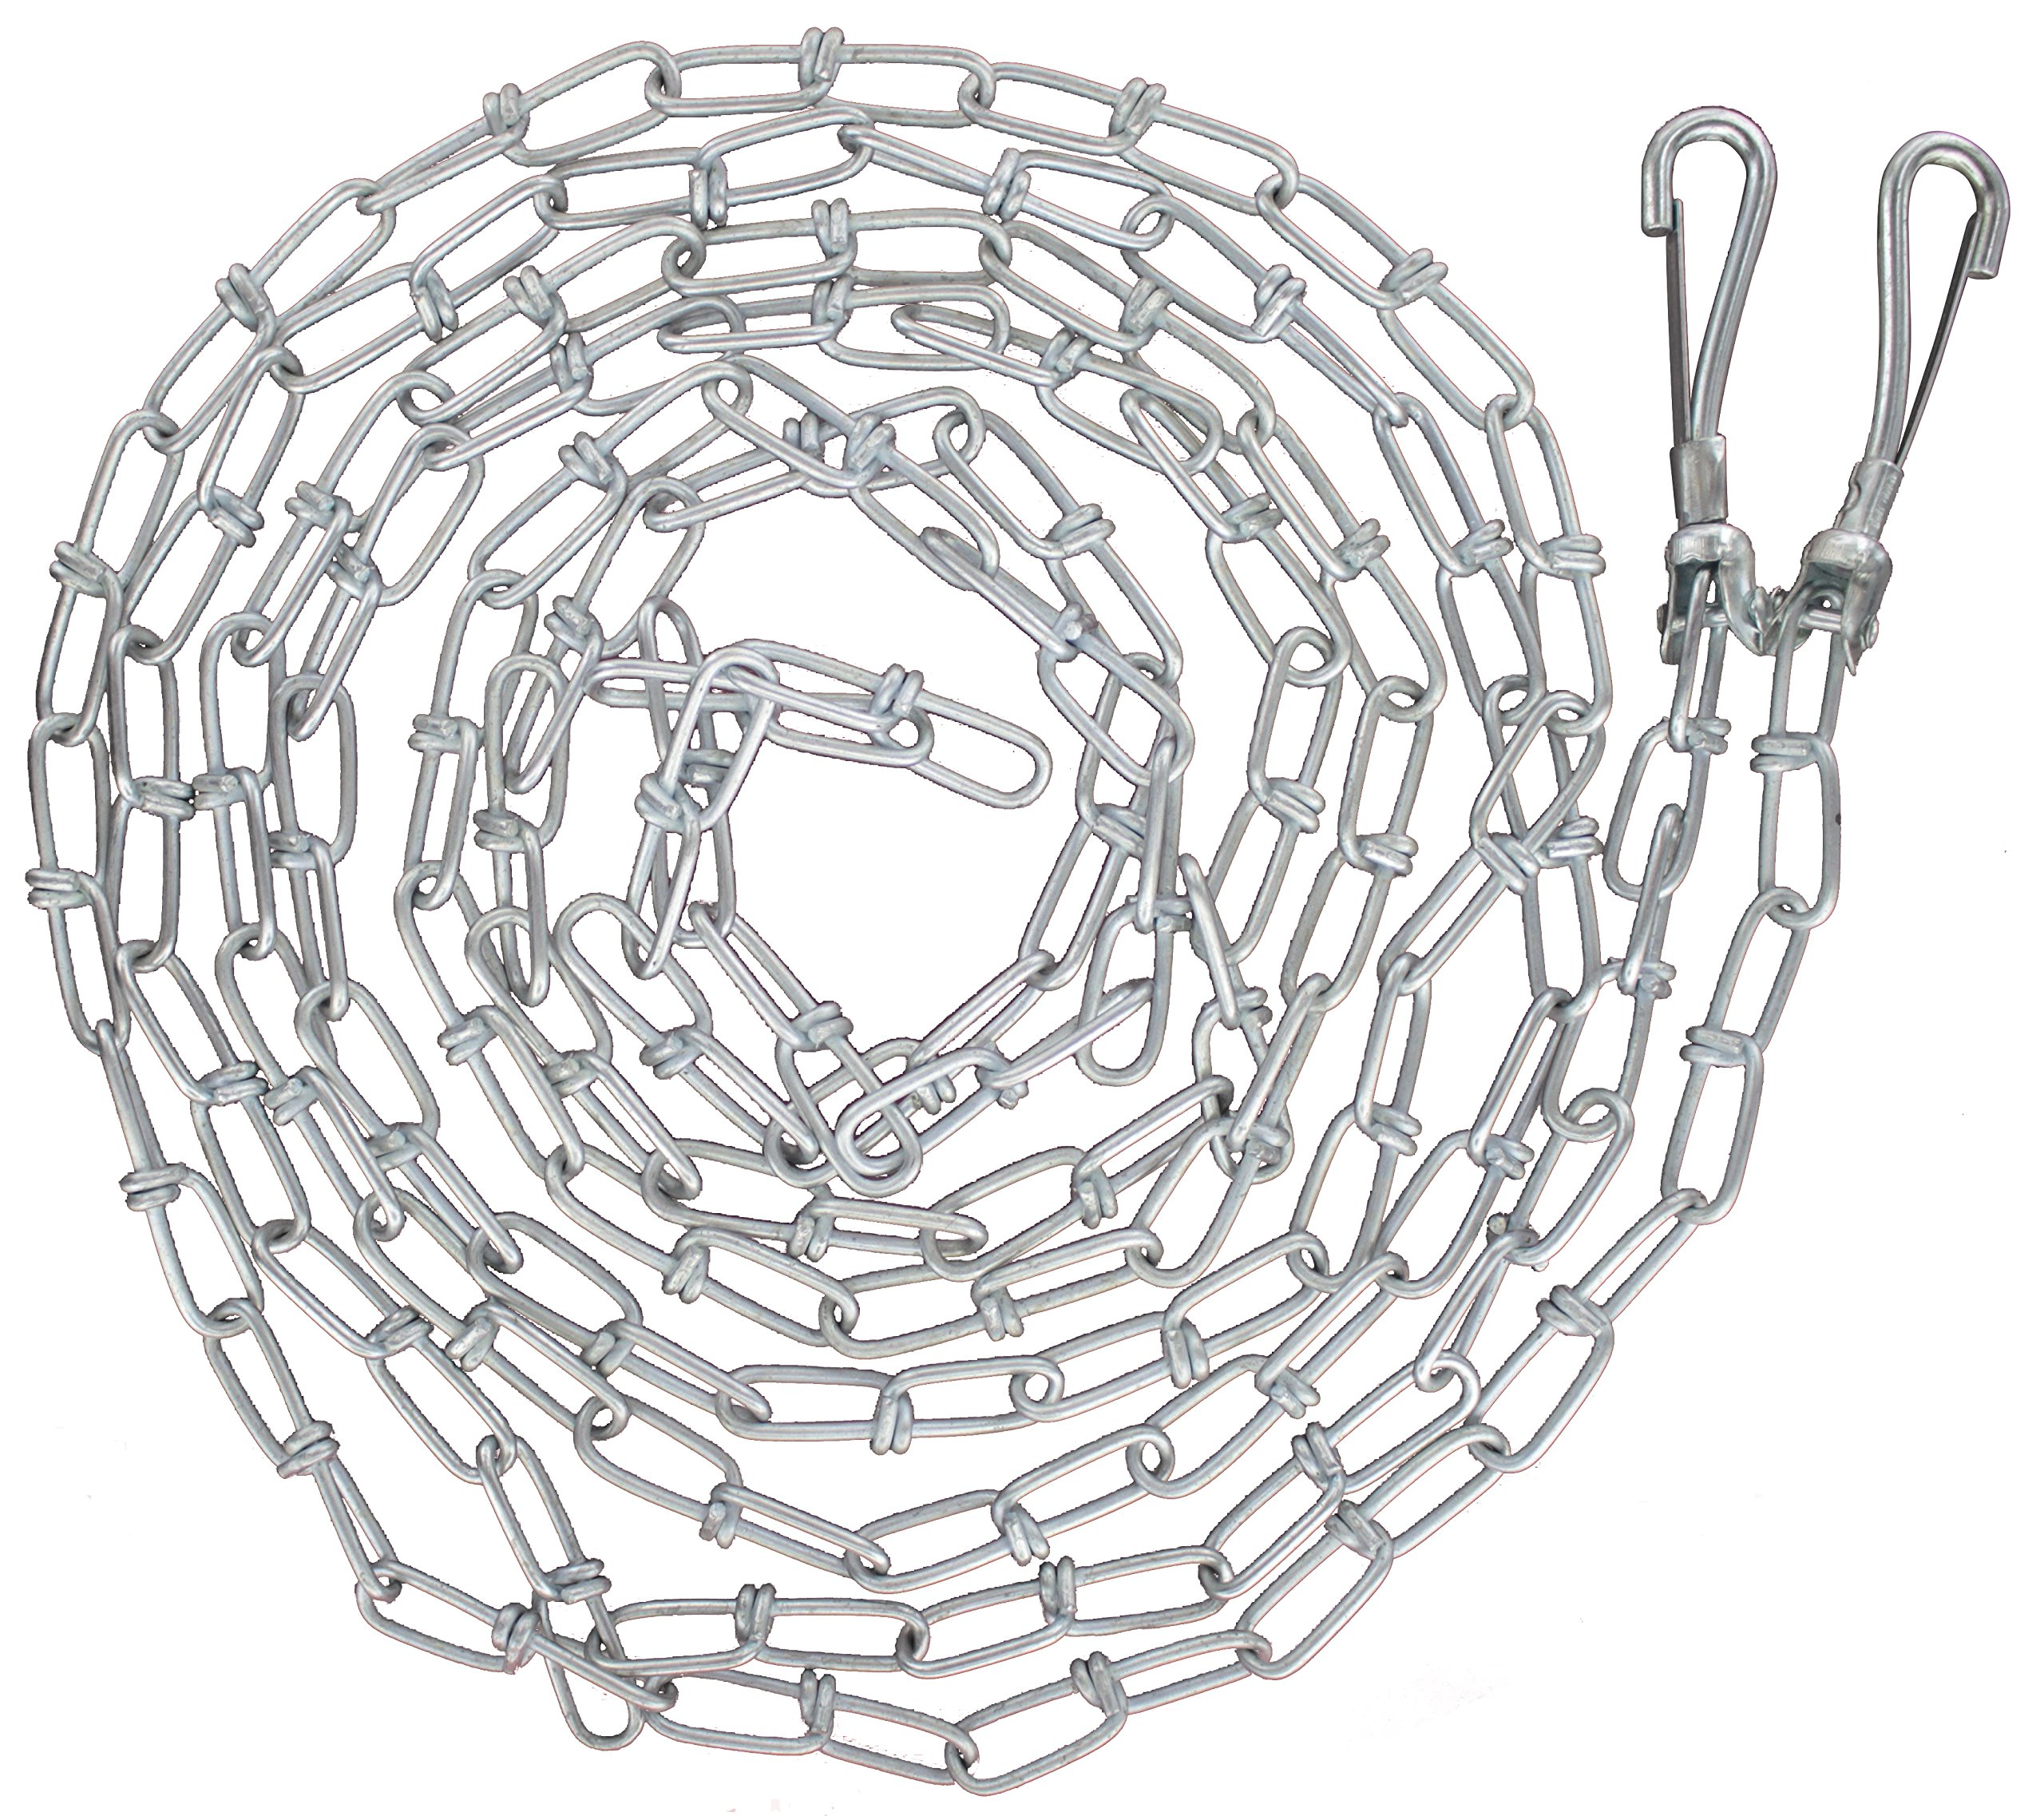 RAM-PRO Heavy Duty Large Dog Tie Out Chain Suitable for Dogs Up to 60 Pounds (14-3/4 Foot Long)